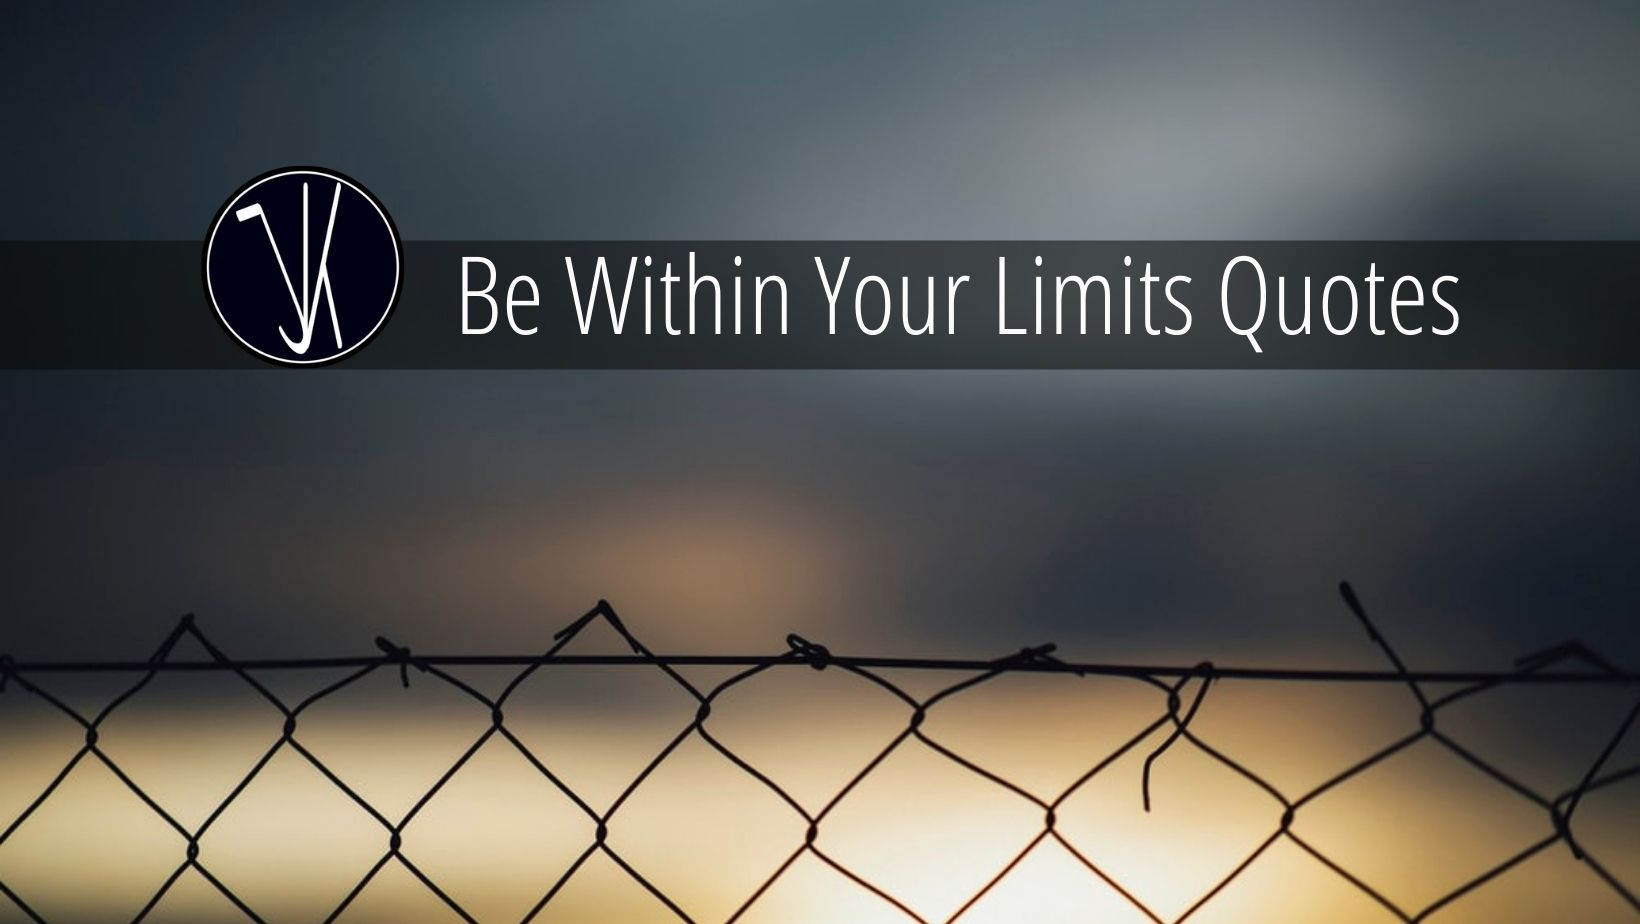 Be Within Your Limits Quotes